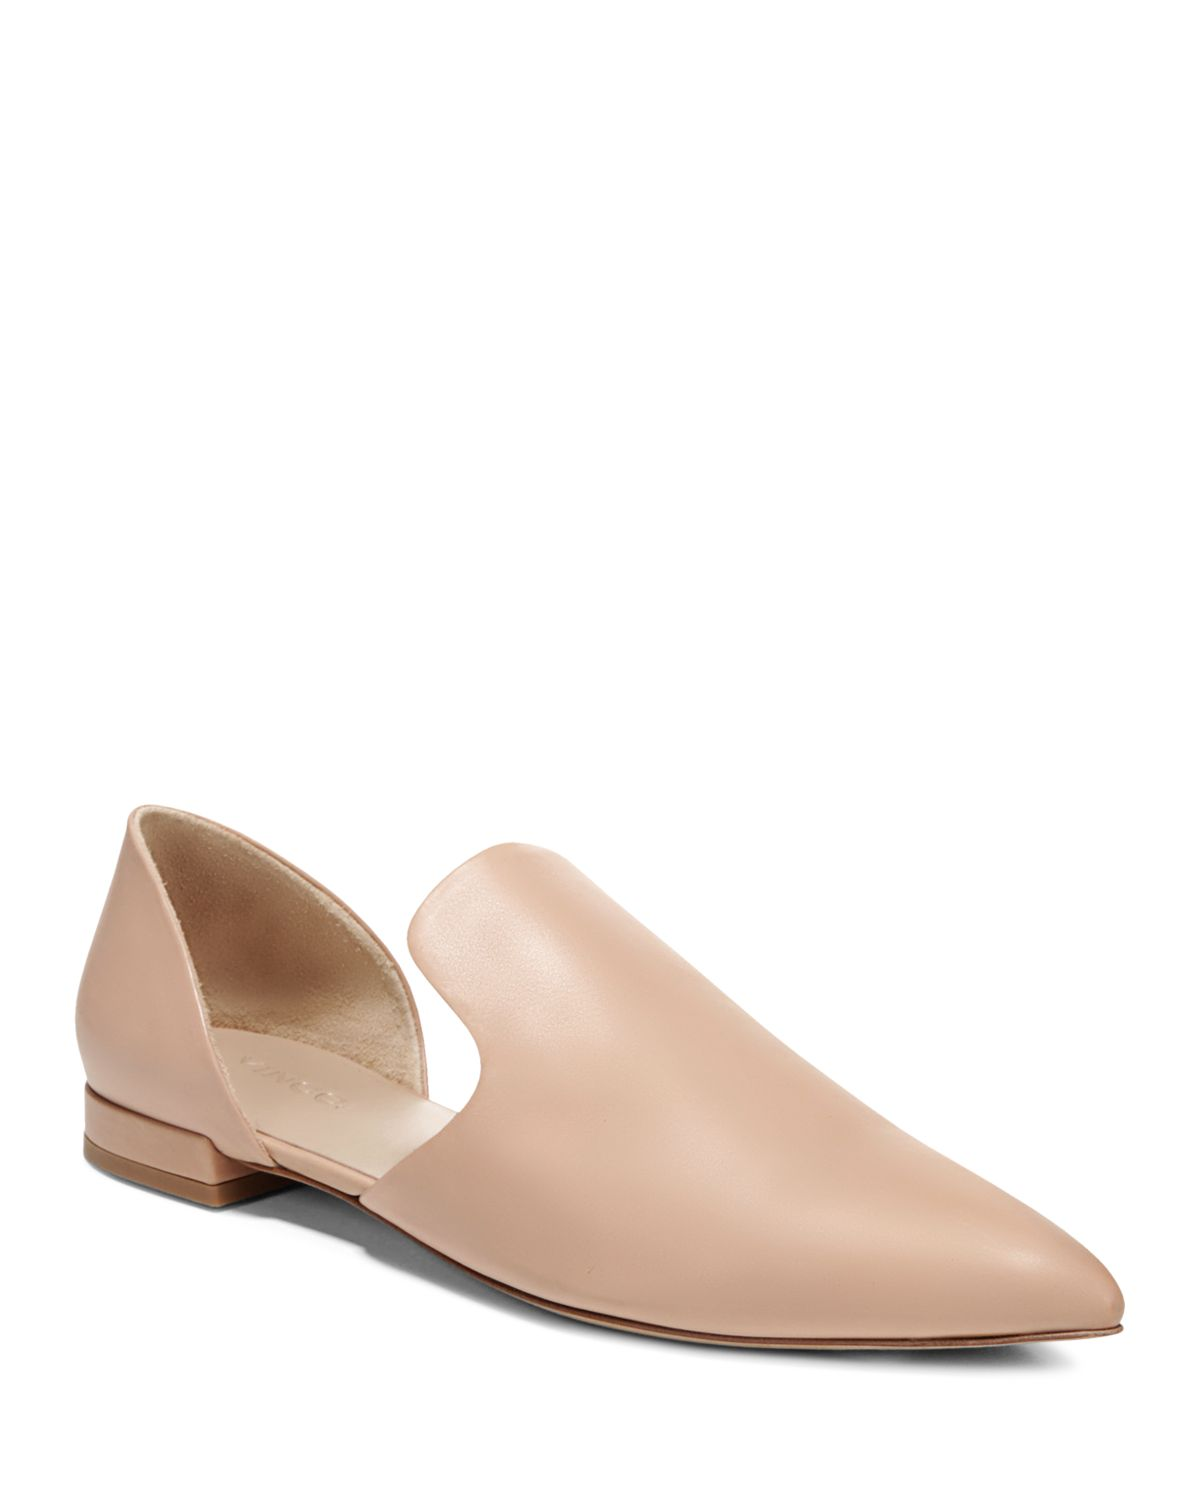 Women's Damris Calf Leather D'orsay Flats by Vince